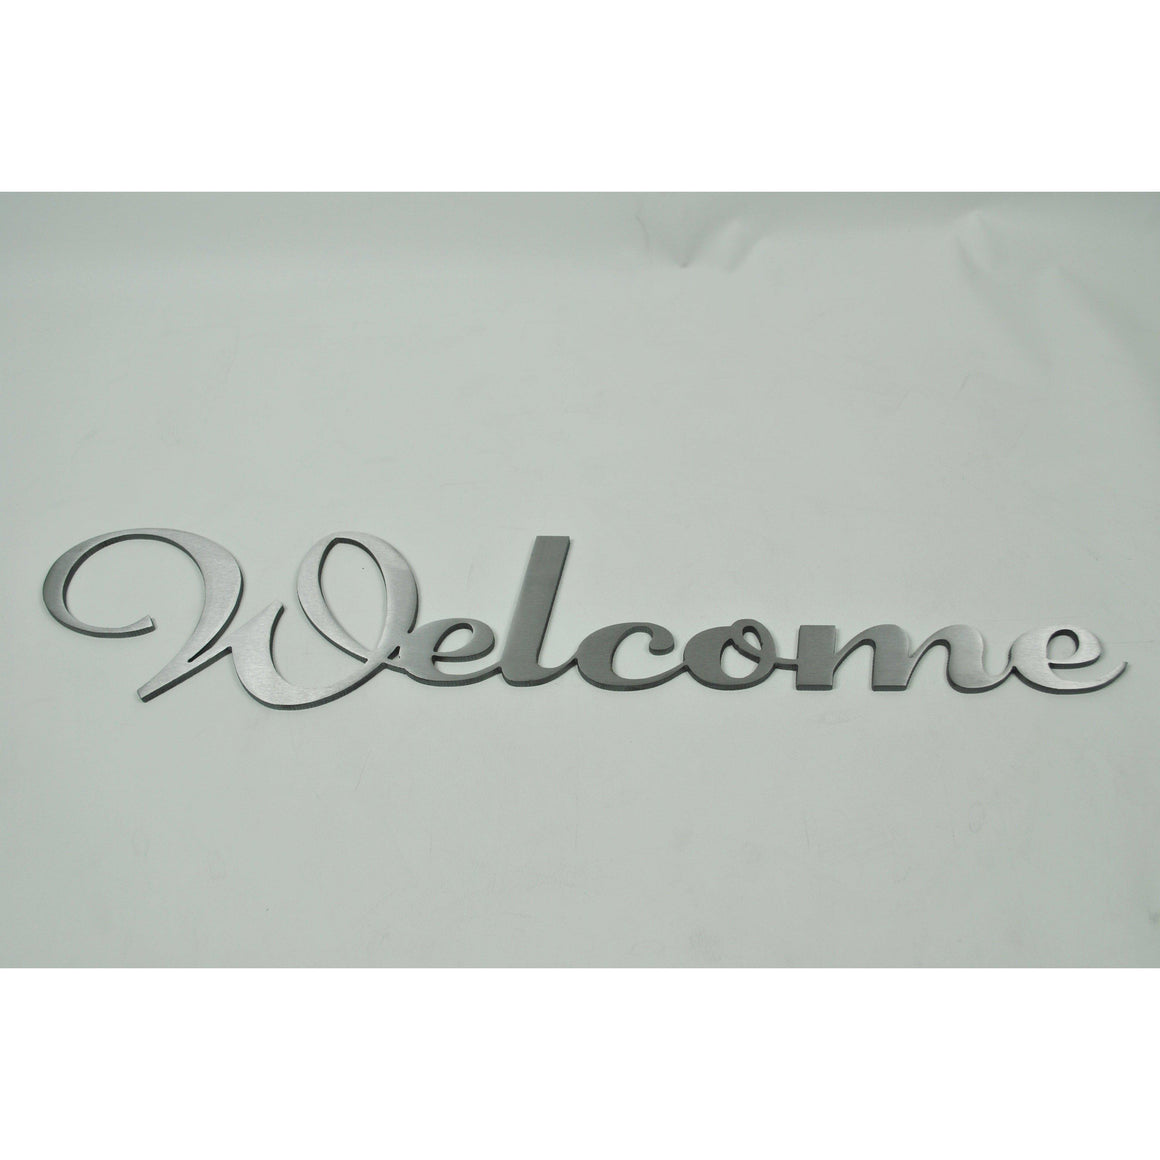 Welcome sign in stainless steel